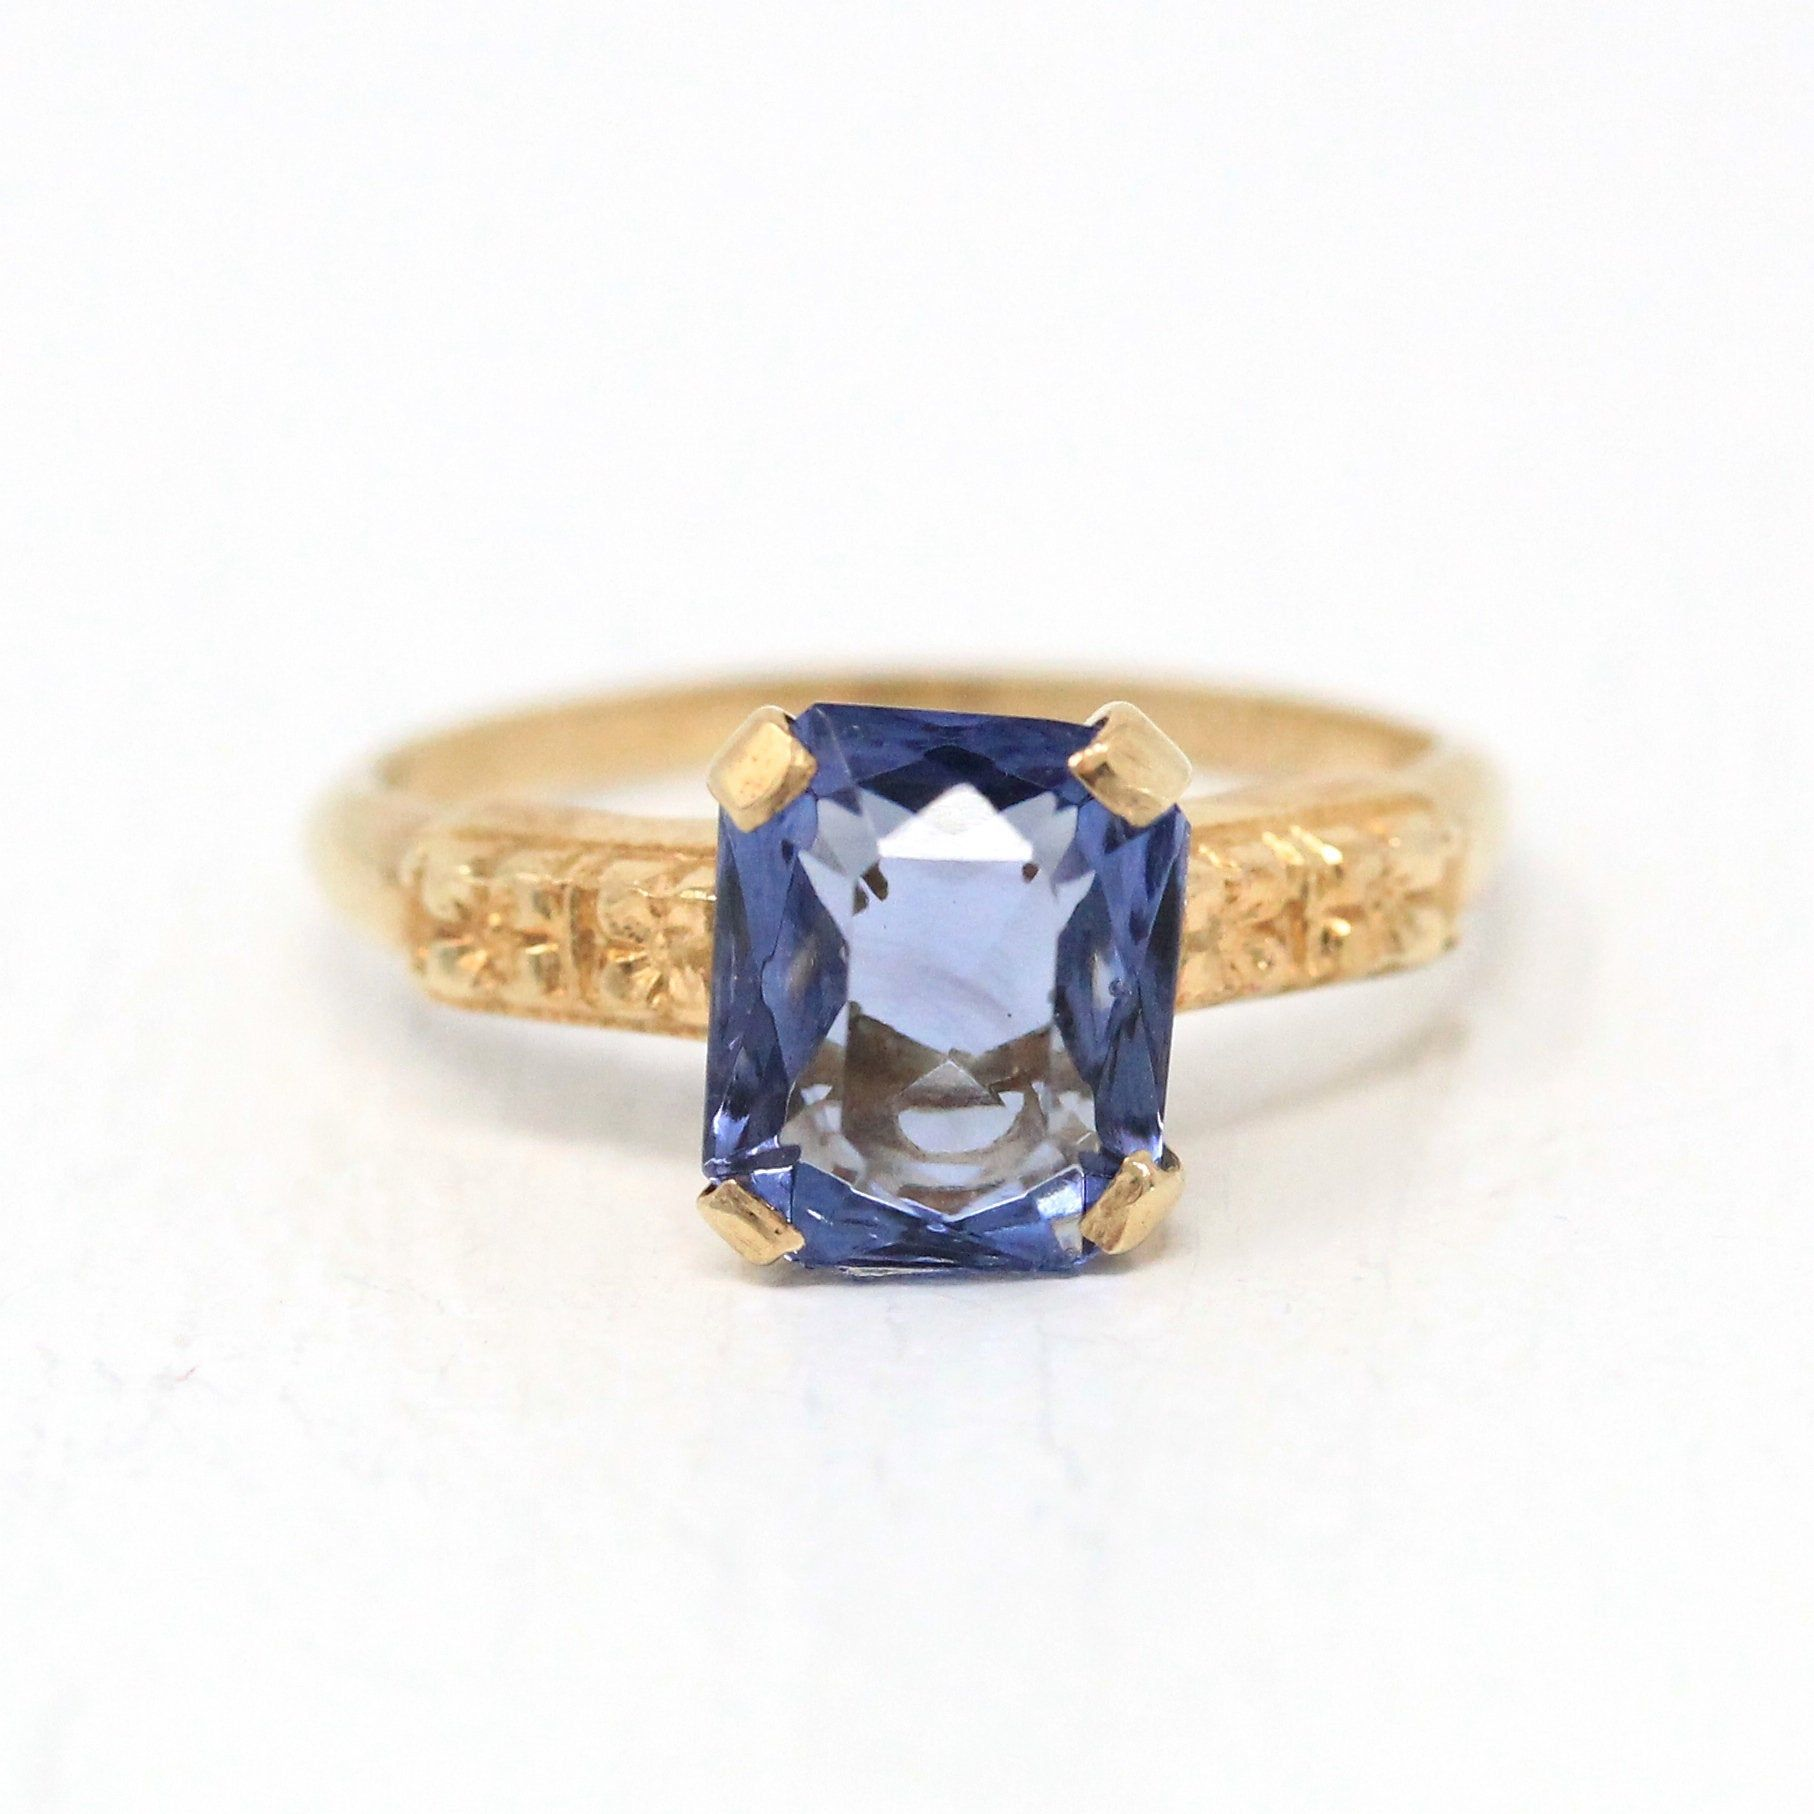 Simulated Sapphire Ring Vintage 10k Yellow Gold Blue Glass 1940s Art Deco Size 4 1 4 September Birthstone In 2020 Vintage Sapphire Ring Art Deco Ring Vintage Rings